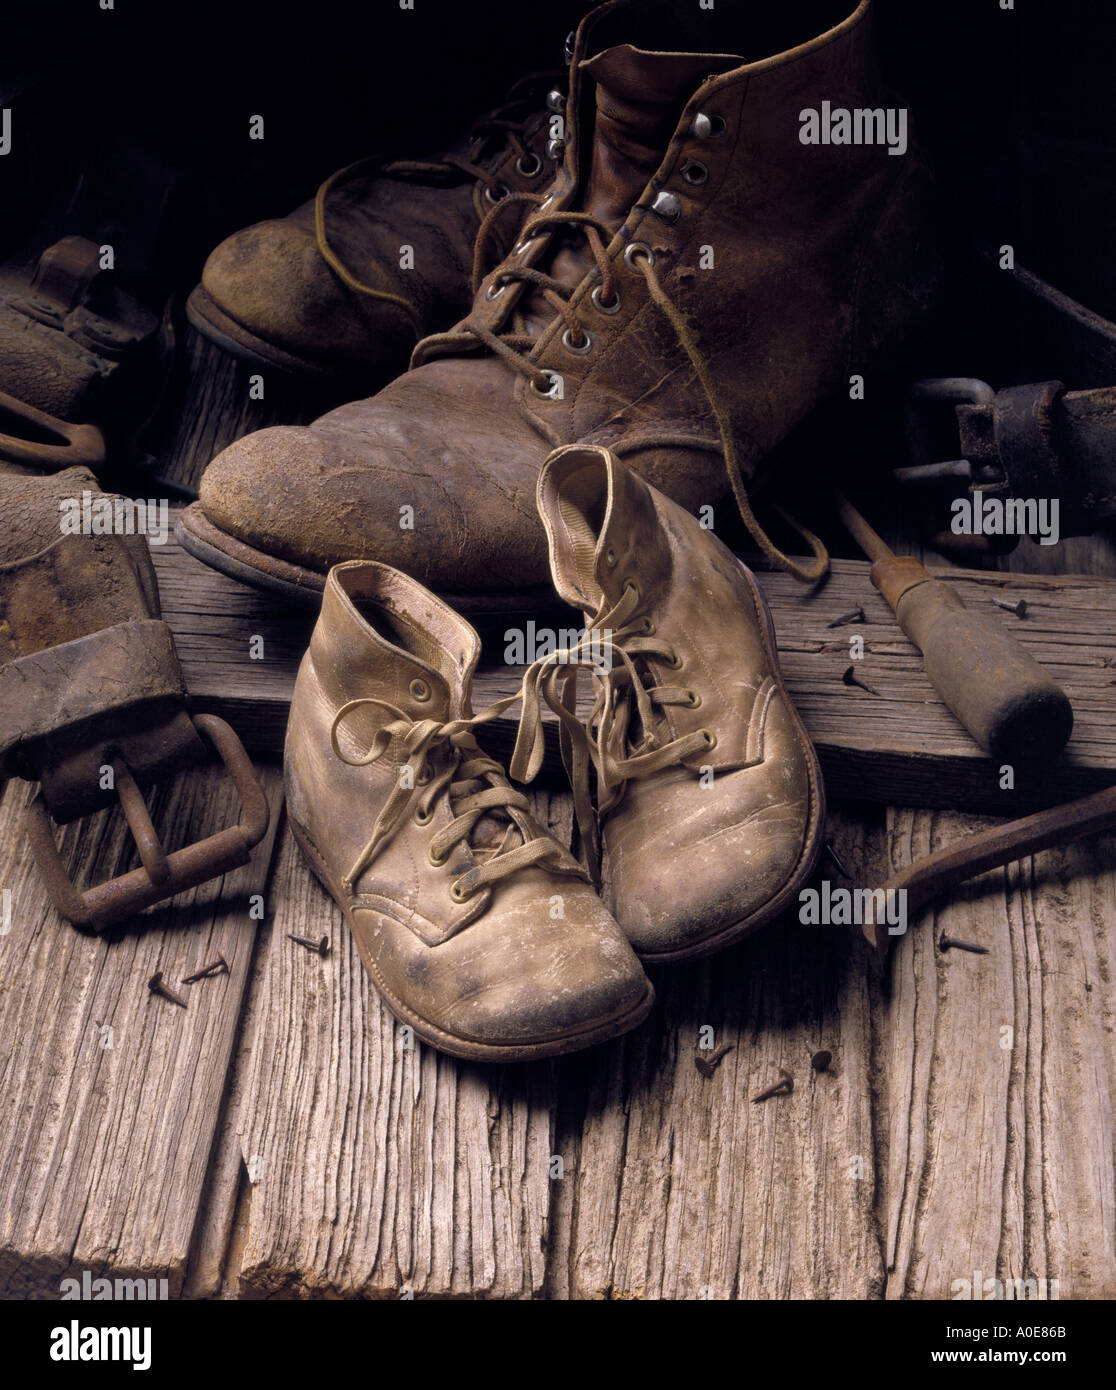 Old shoes old antique and baby shoes in garage or attic or cobbler setting & Old shoes old antique and baby shoes in garage or attic or cobbler ...